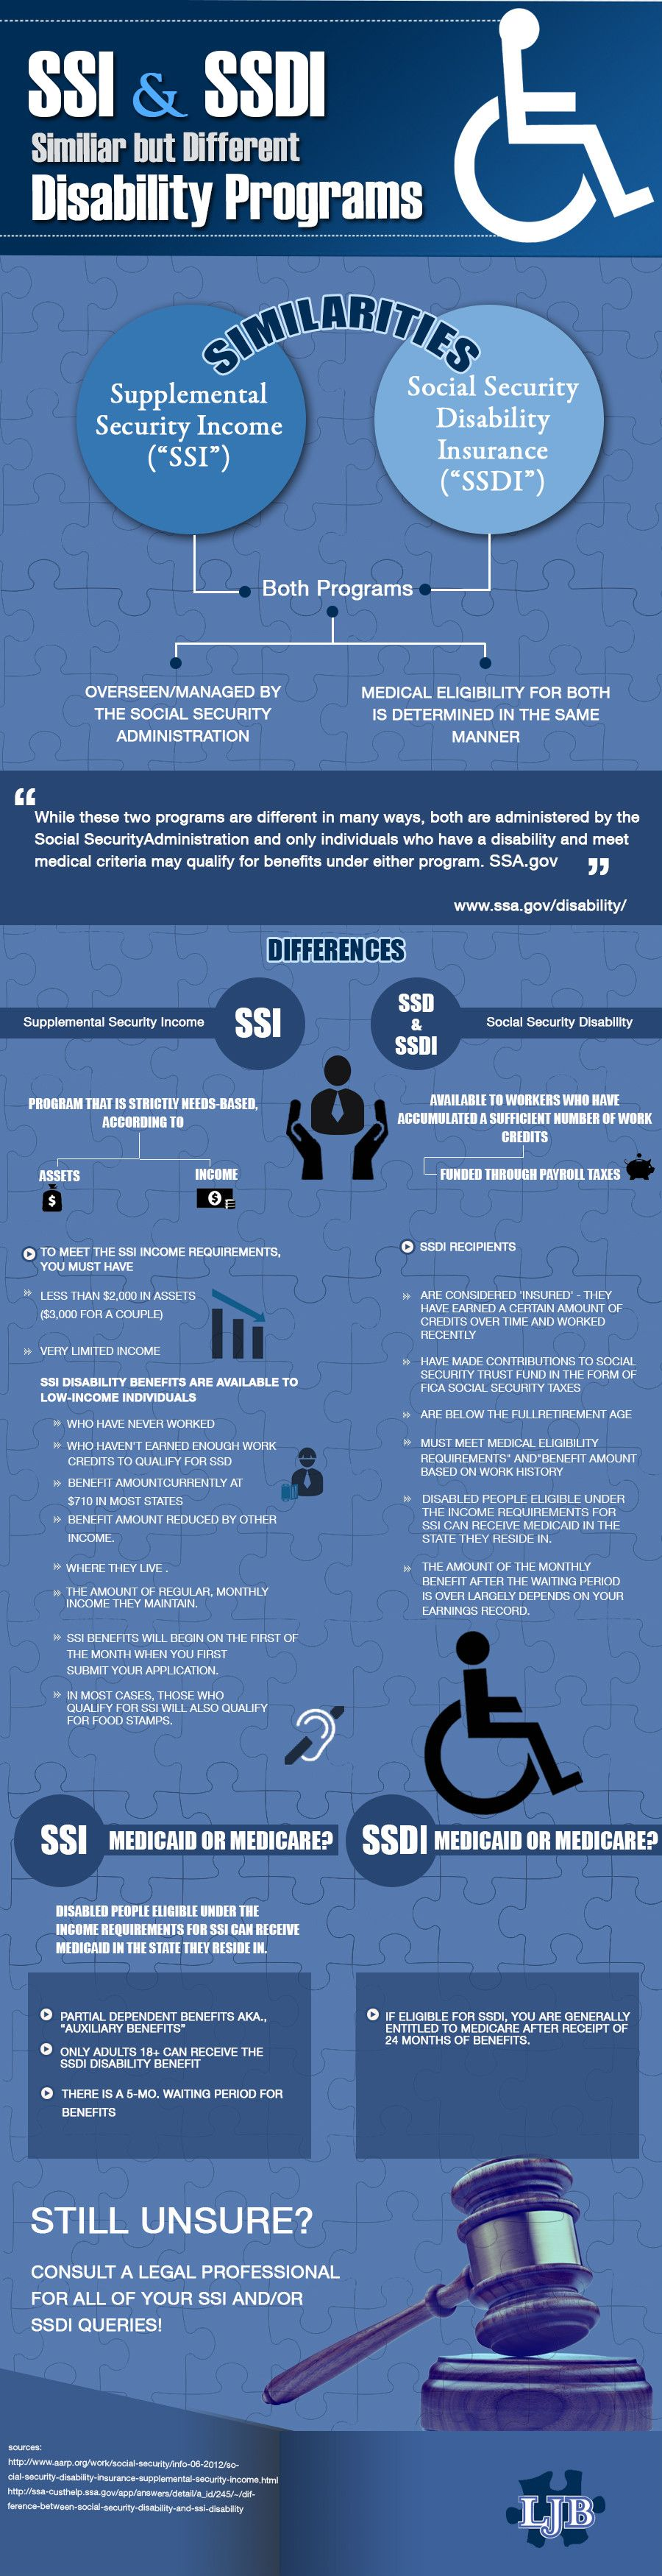 what is the difference between insurance and social assistance programs